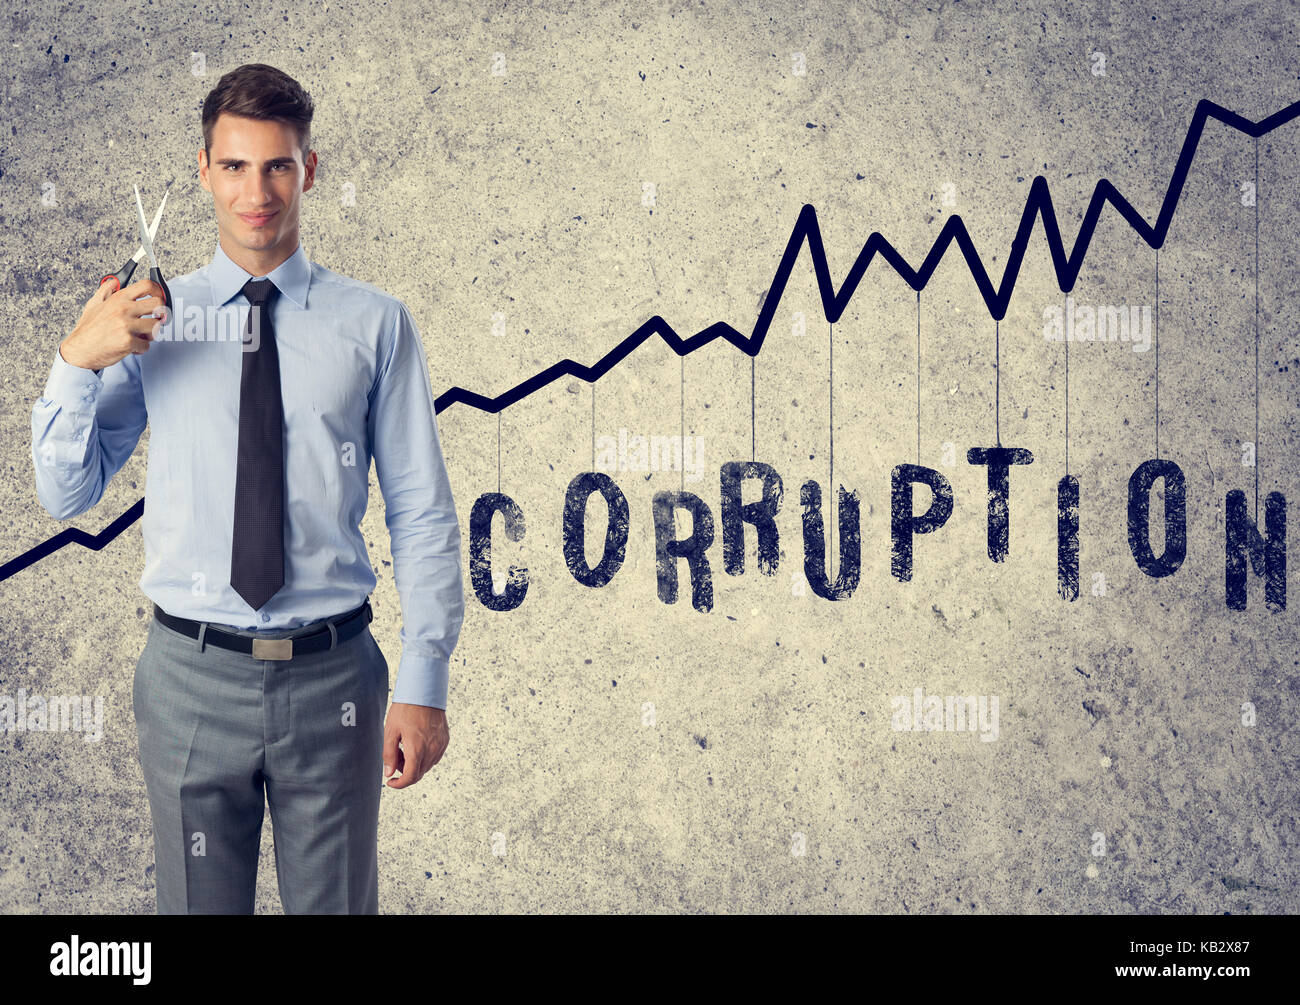 cut corruption  - young businessman with scissors anti corruption - Stock Image